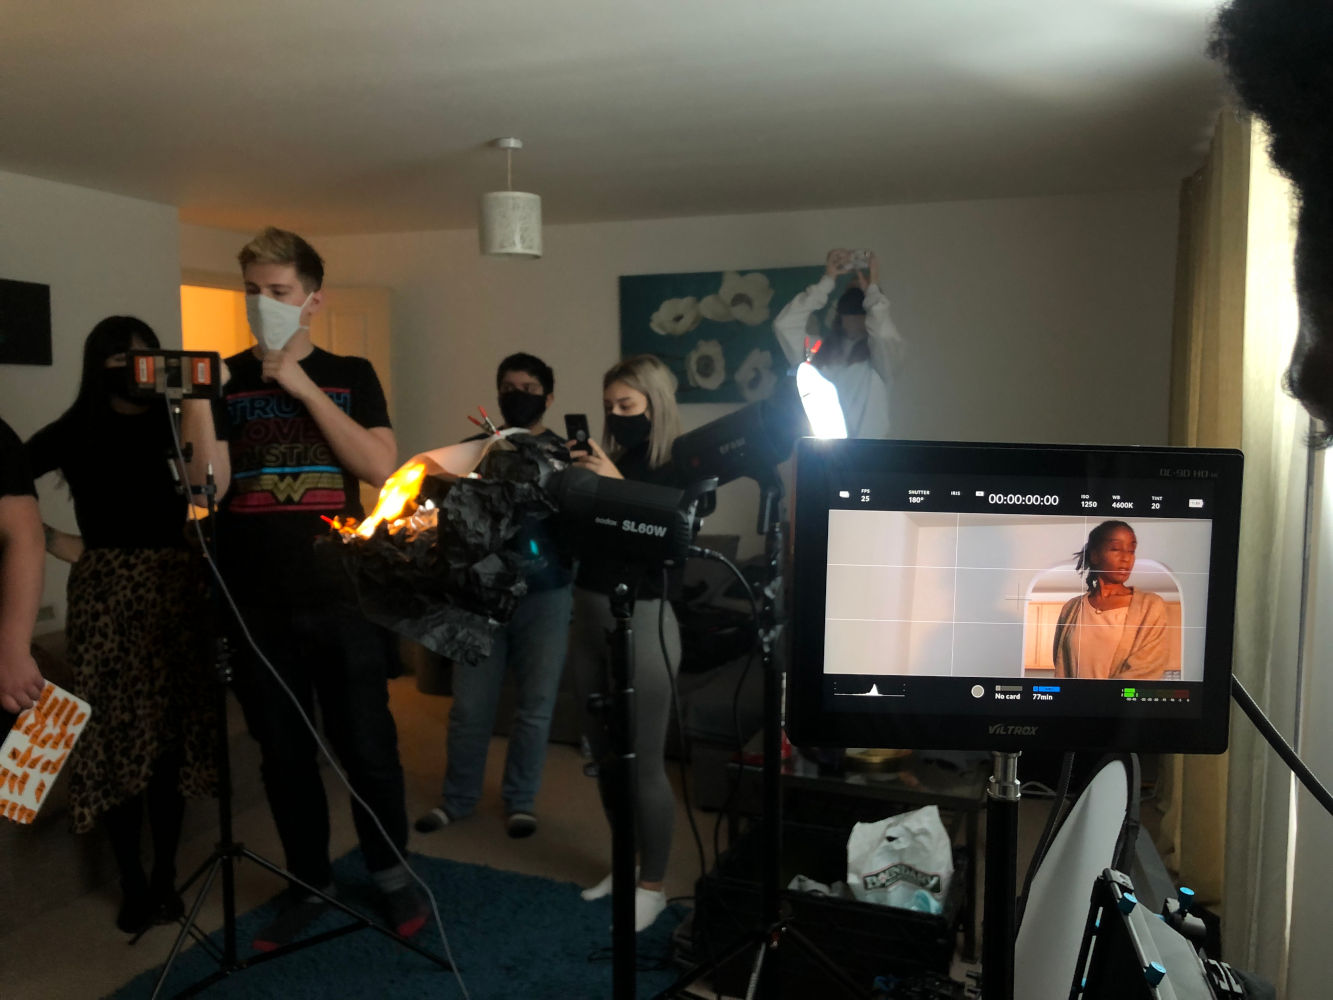 Behind the scenes image from Liam Calvert's Voyager short film with Fredericka Charles